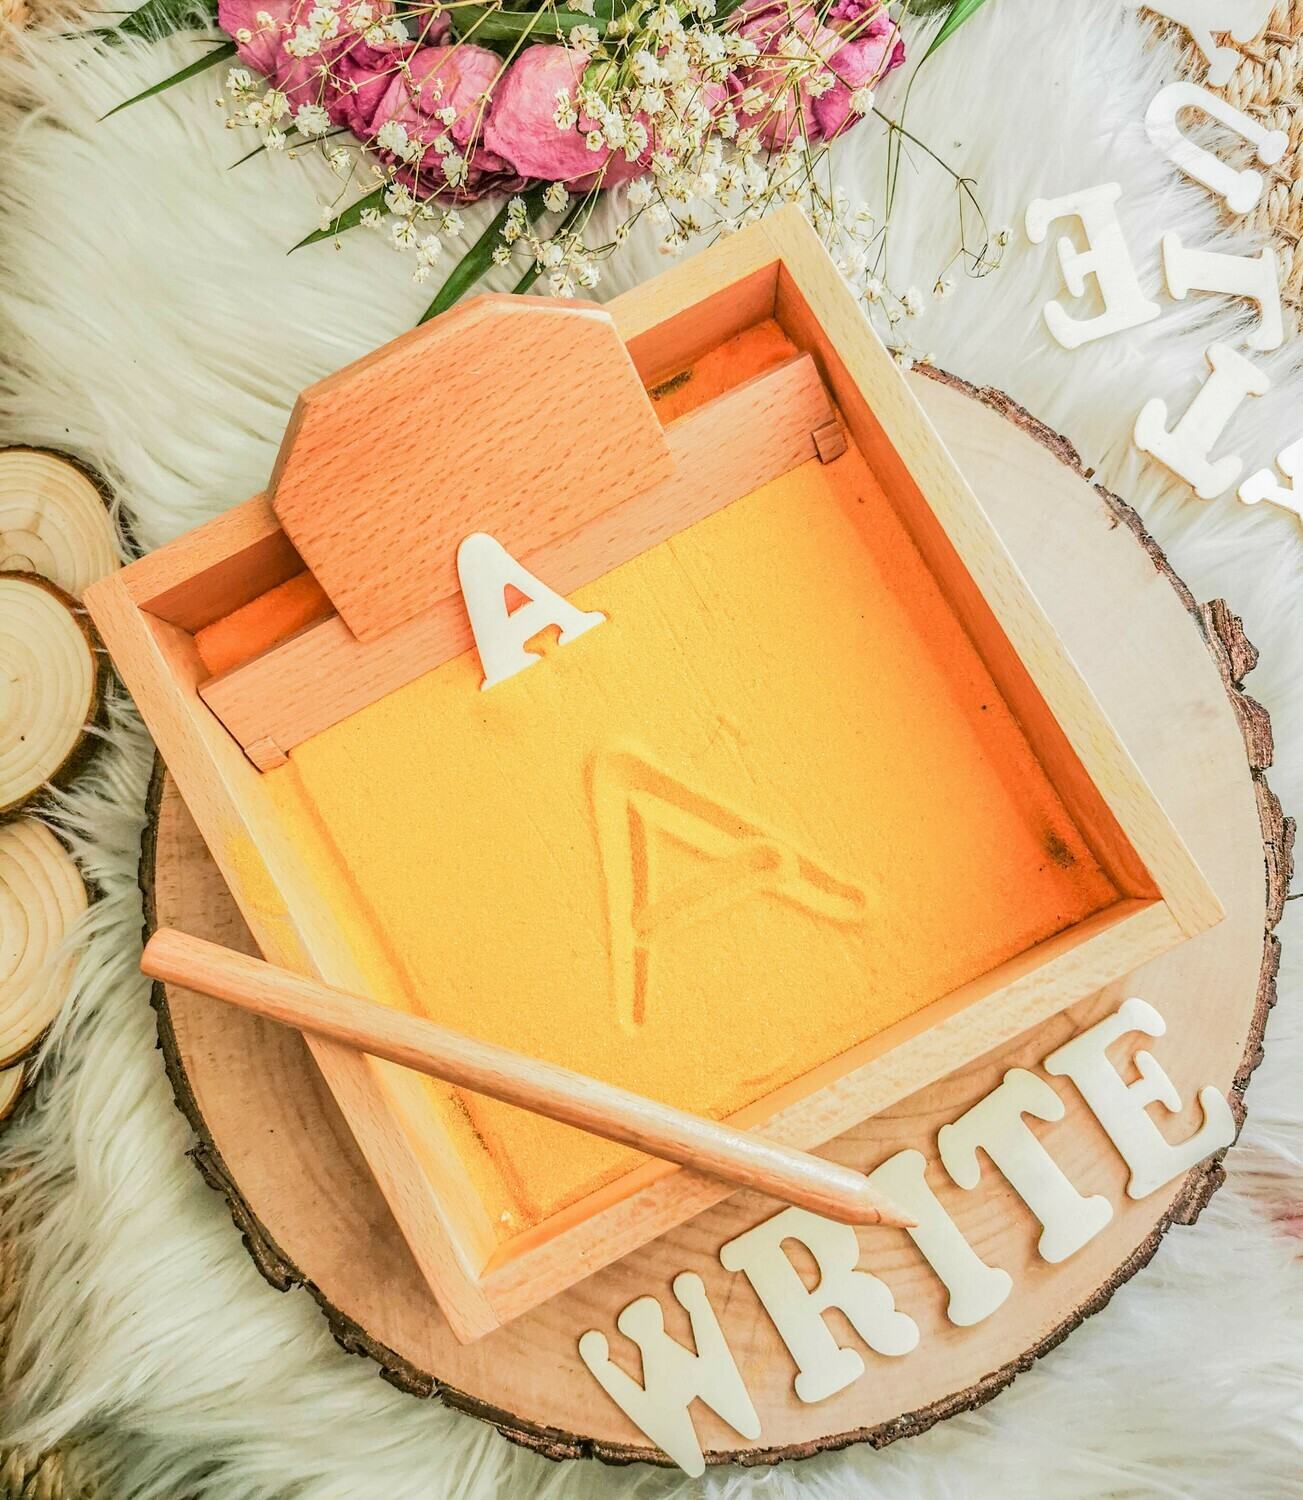 Letter Formation Sand Tray with a Wooden Pen